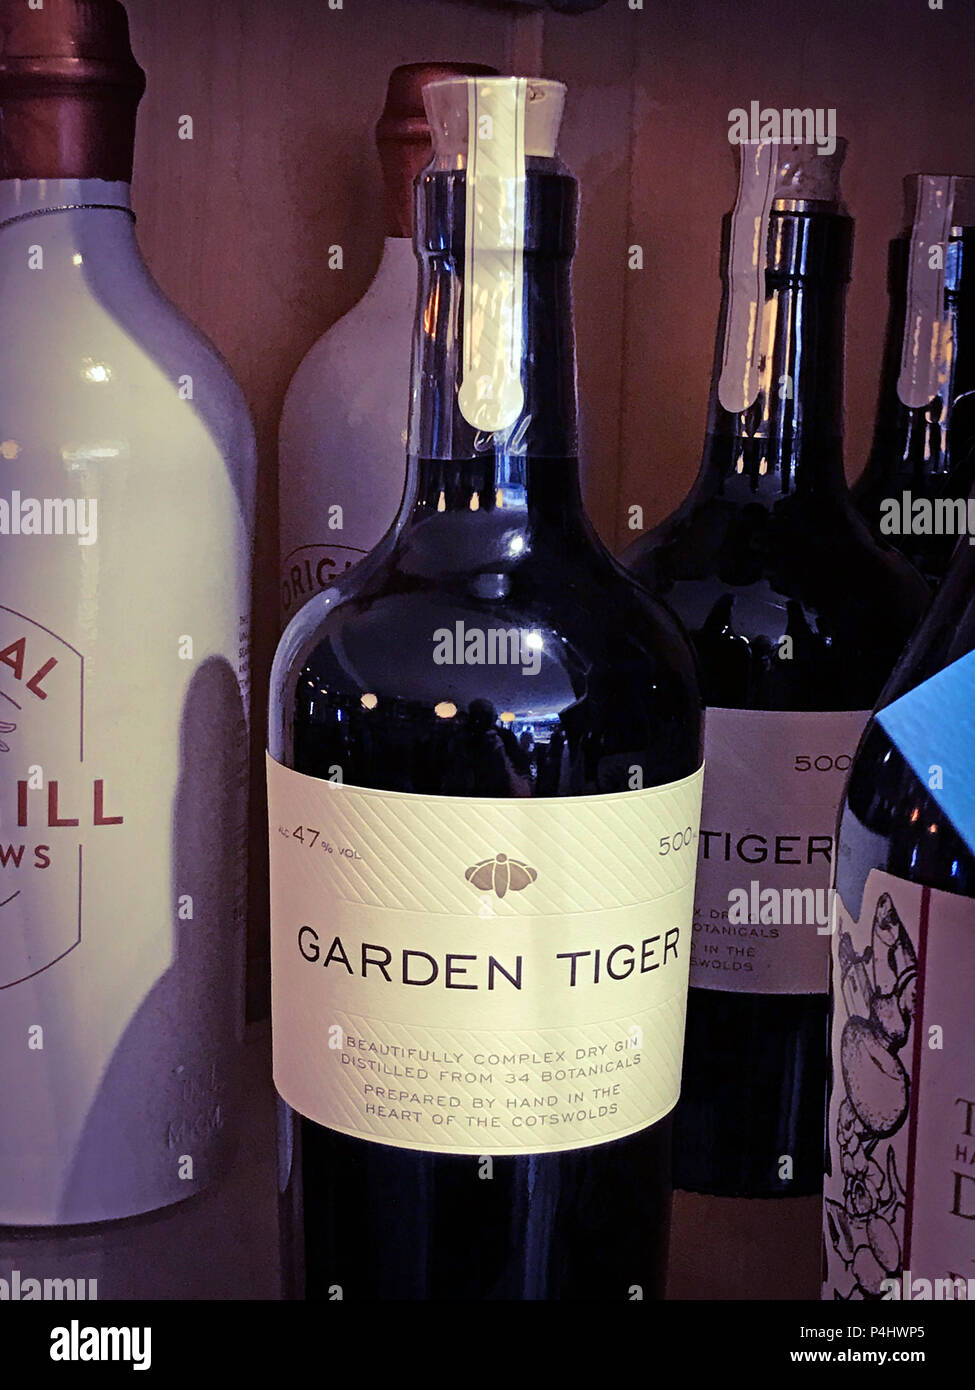 Garden Tiger Dry Gin,botanical gin,Cotswolds gin Stock Photo